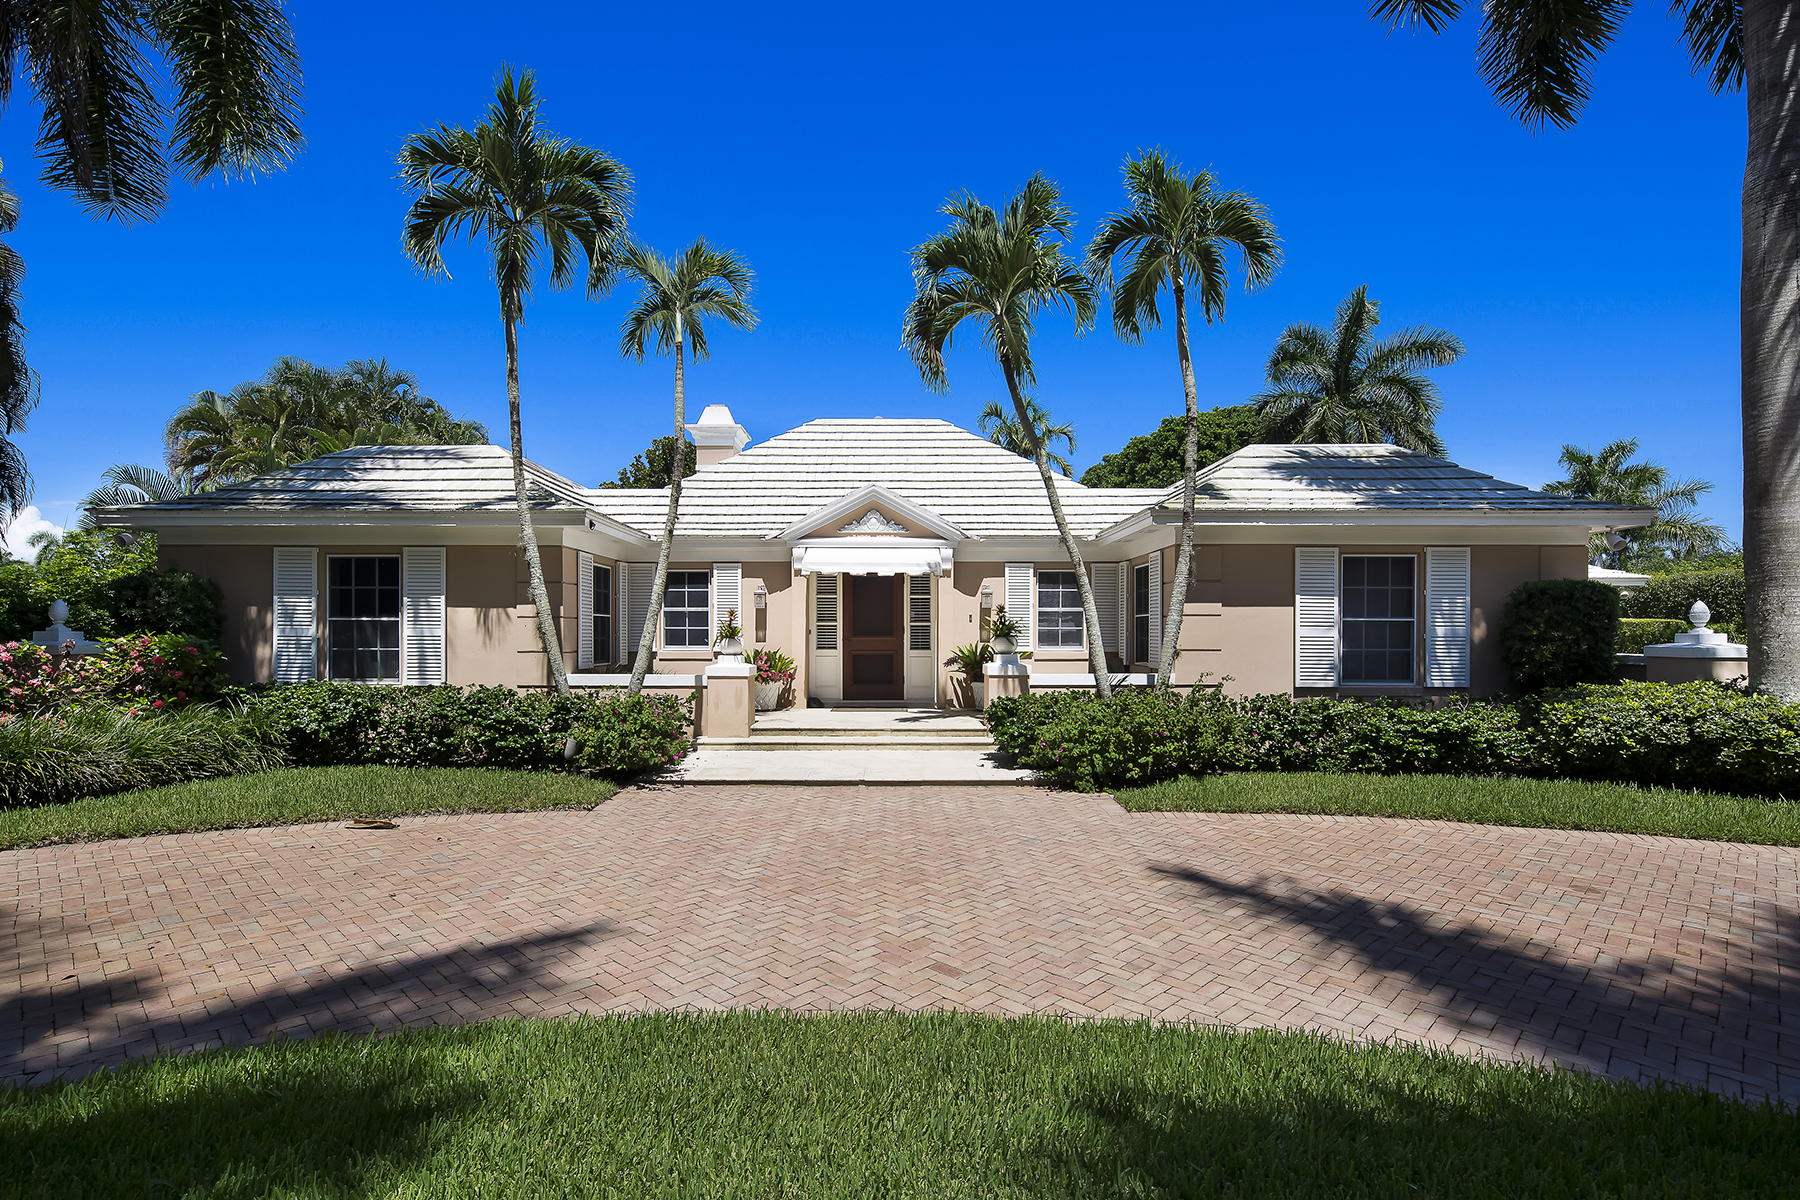 Single Family Home for Sale at PORT ROYAL 2700 Lantern Ln, Naples, Florida 34102 United States